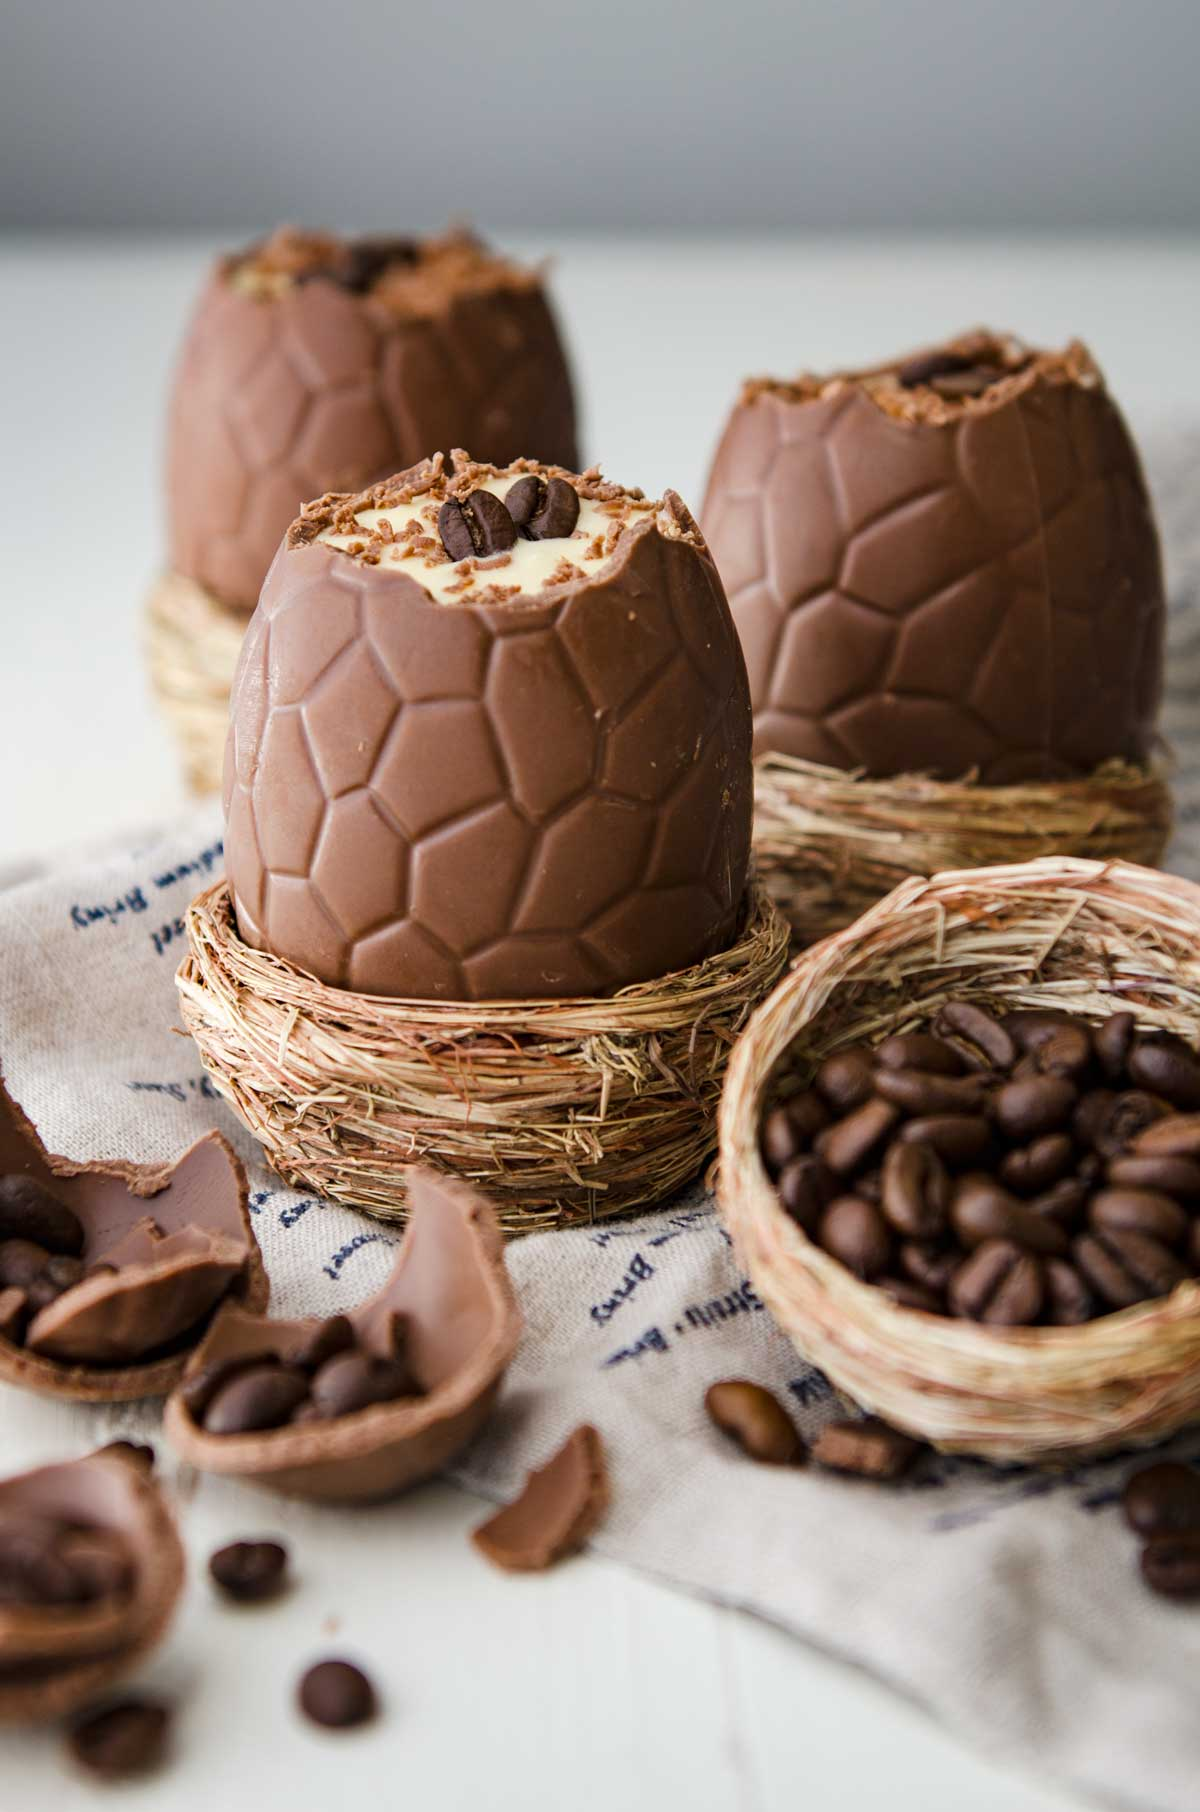 Tiramis 249 Filled Easter Eggs Chew Town Food Blog